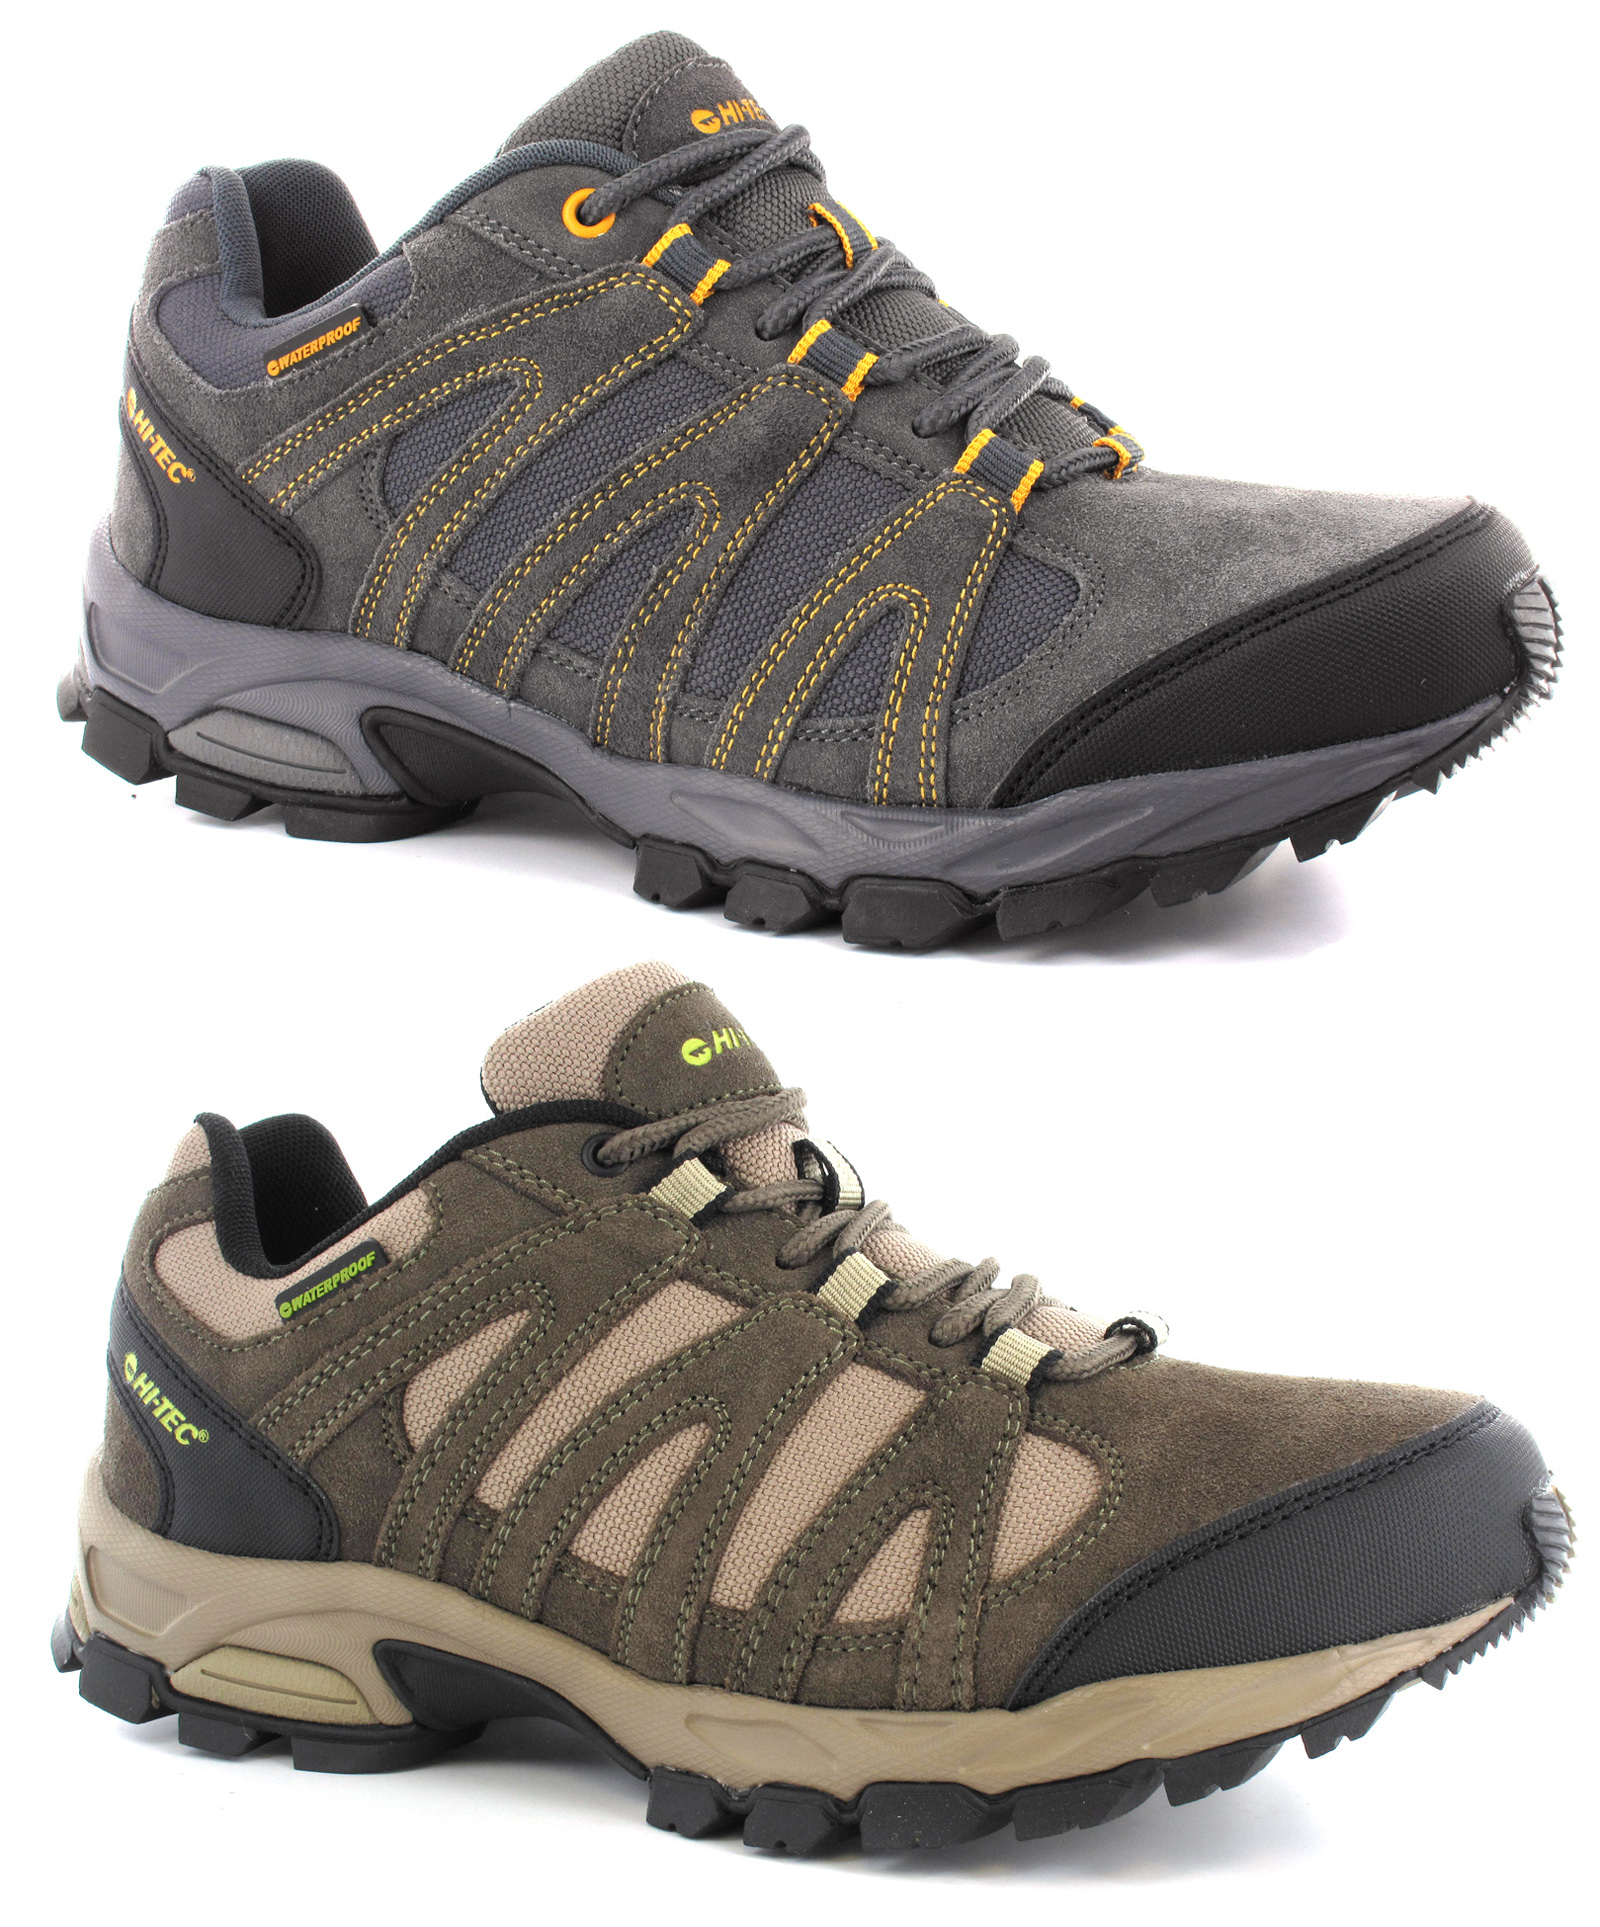 Hi-tec-Alto-Low-Waterproof-Lightweight-Hiking-Shoes-Trainers-Size-7-13